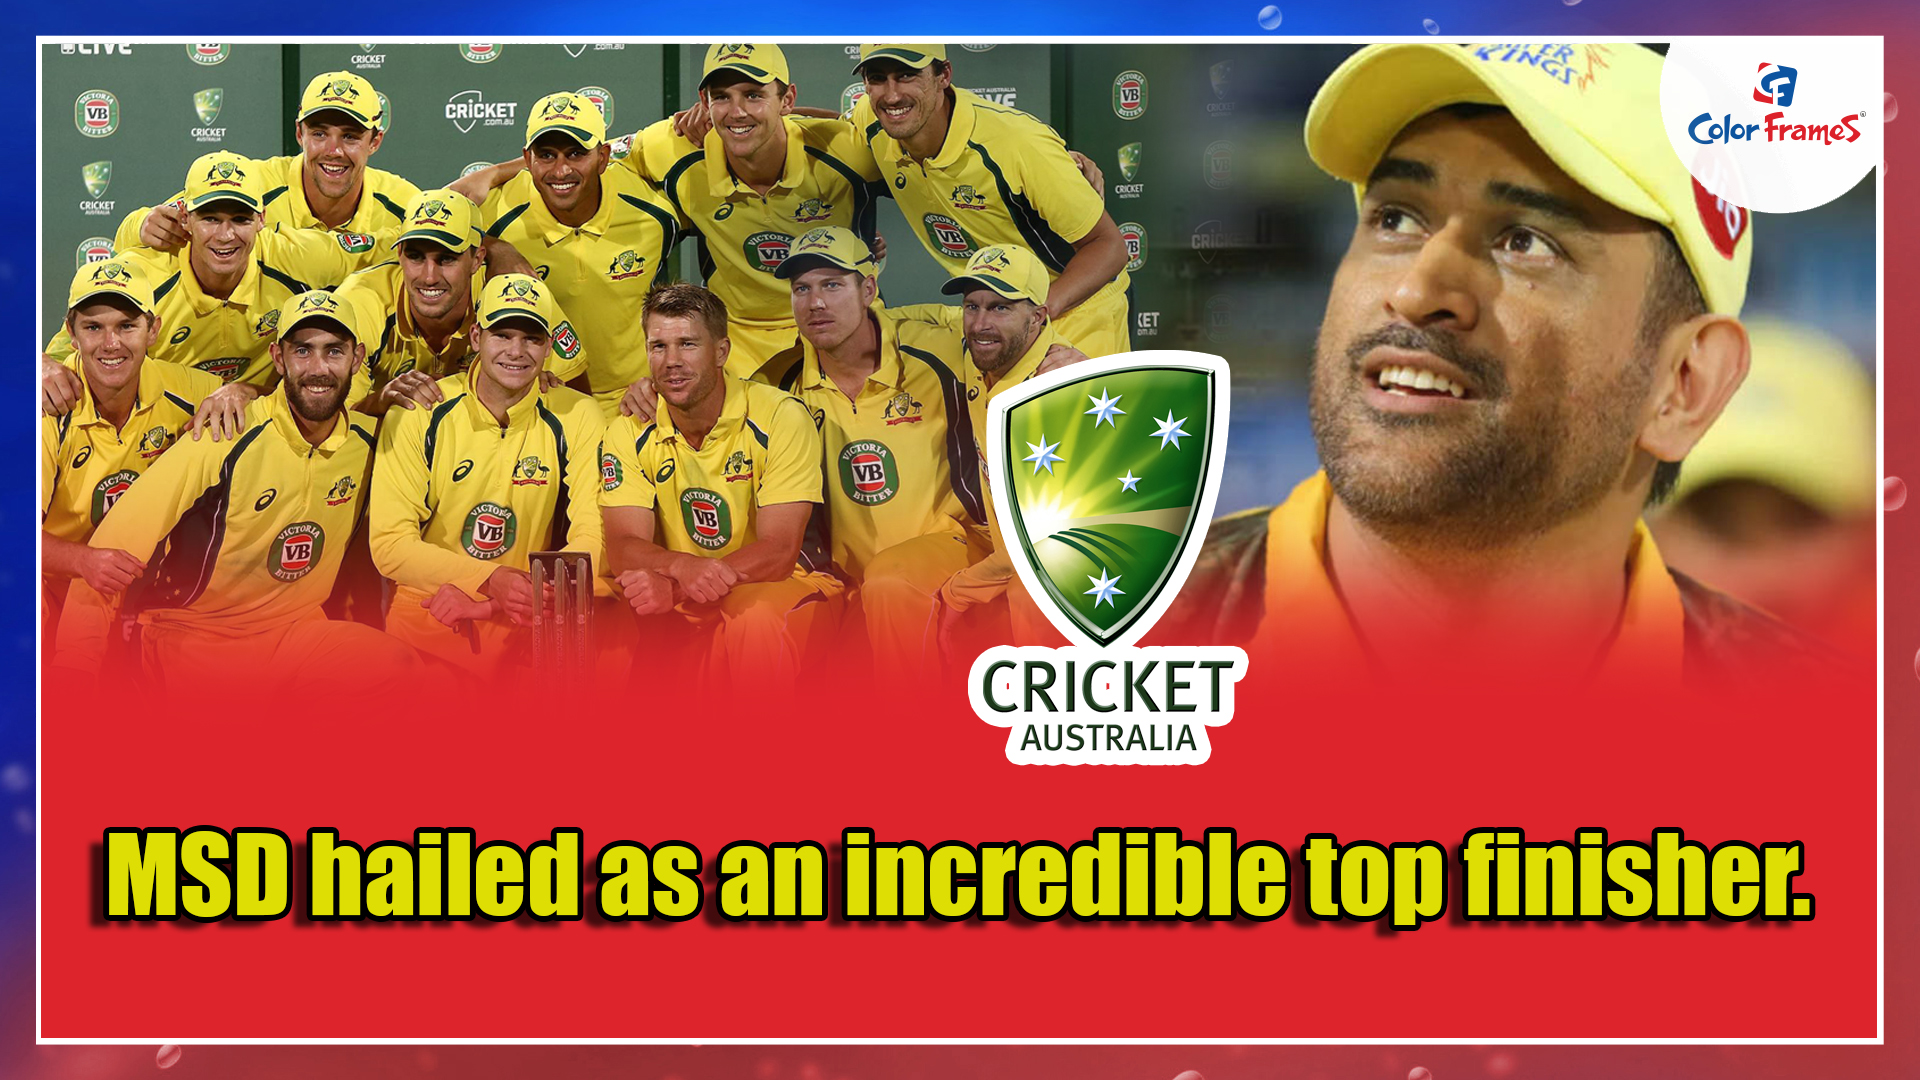 MSD hailed as an incredible top finisher.